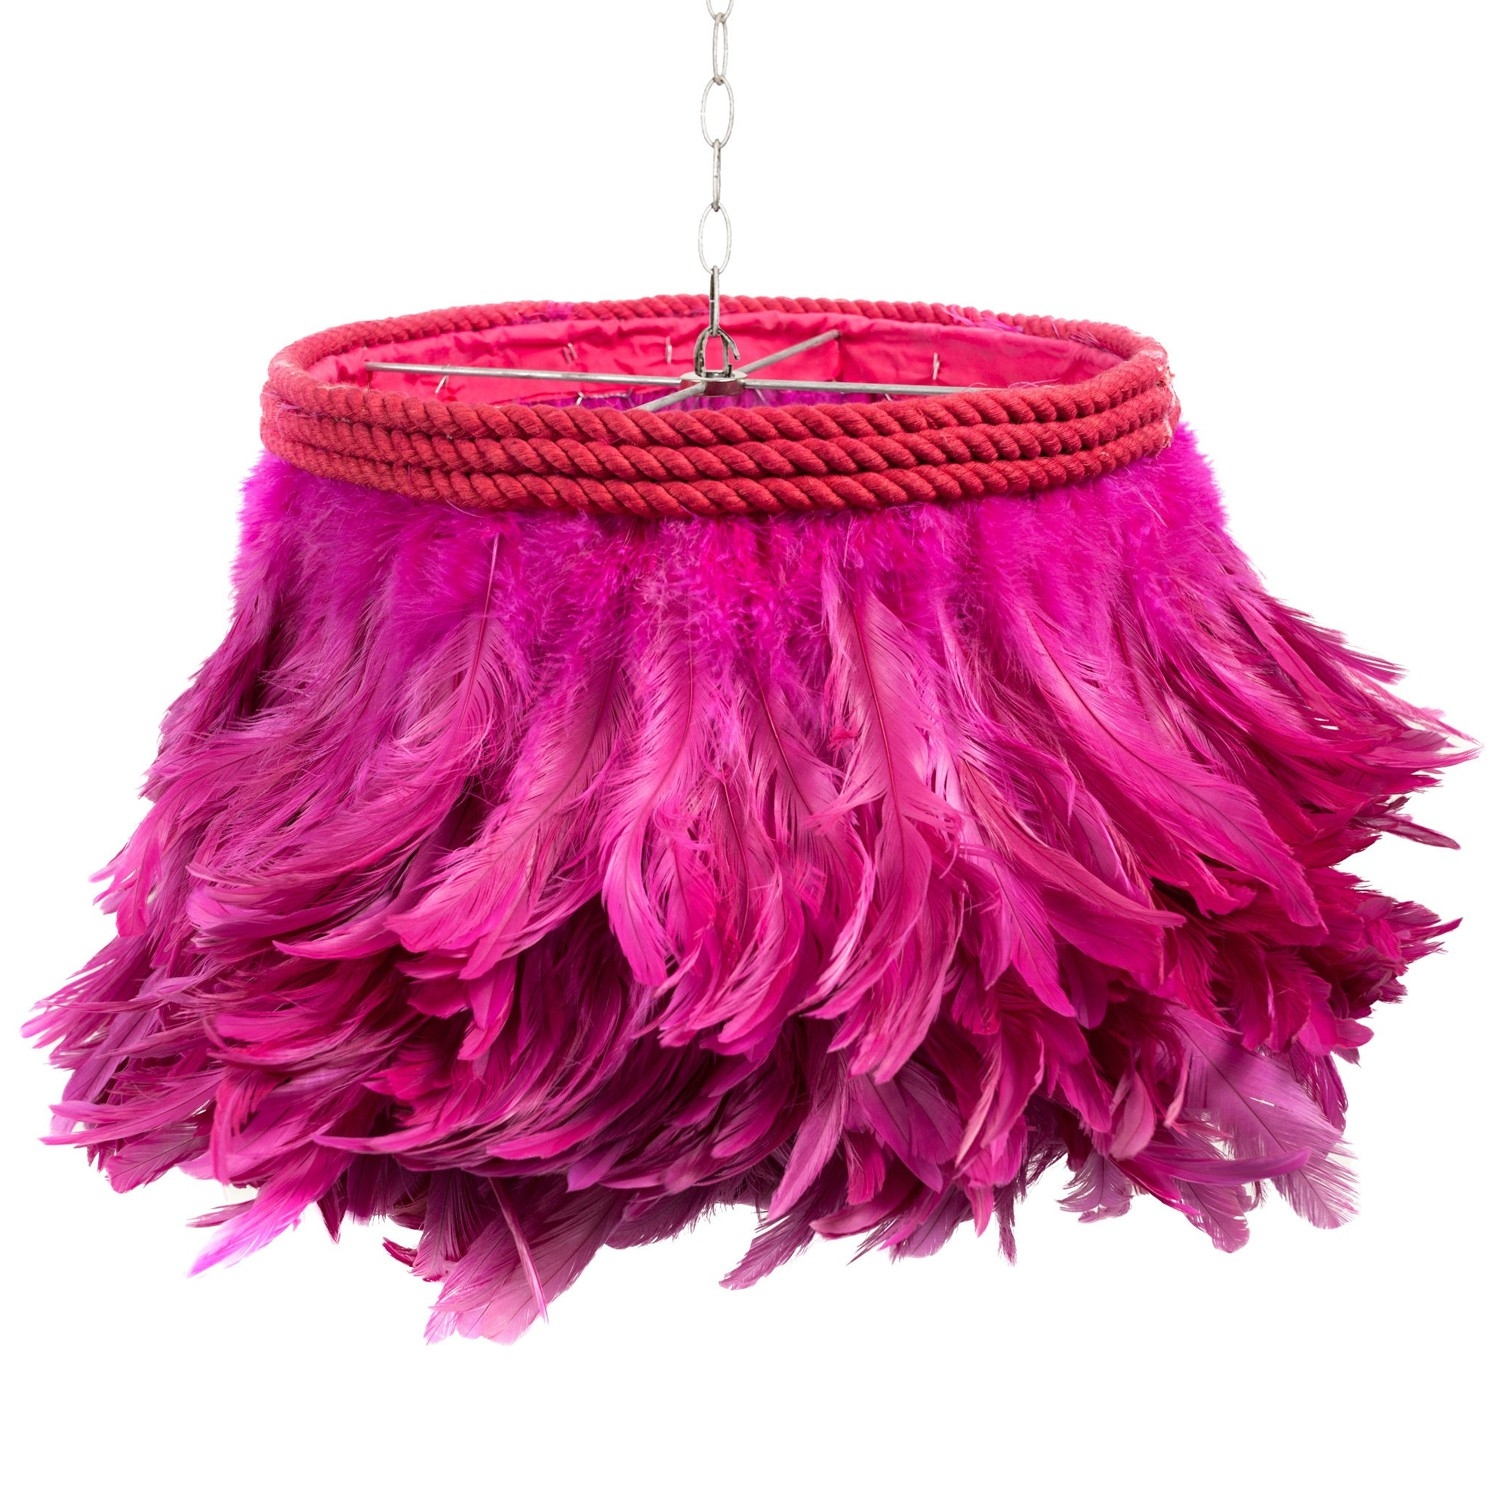 Jamie Dietrich Designs Fuschia Feather Lamp Candelabra Inc Within Fuschia Chandelier (Image 8 of 15)